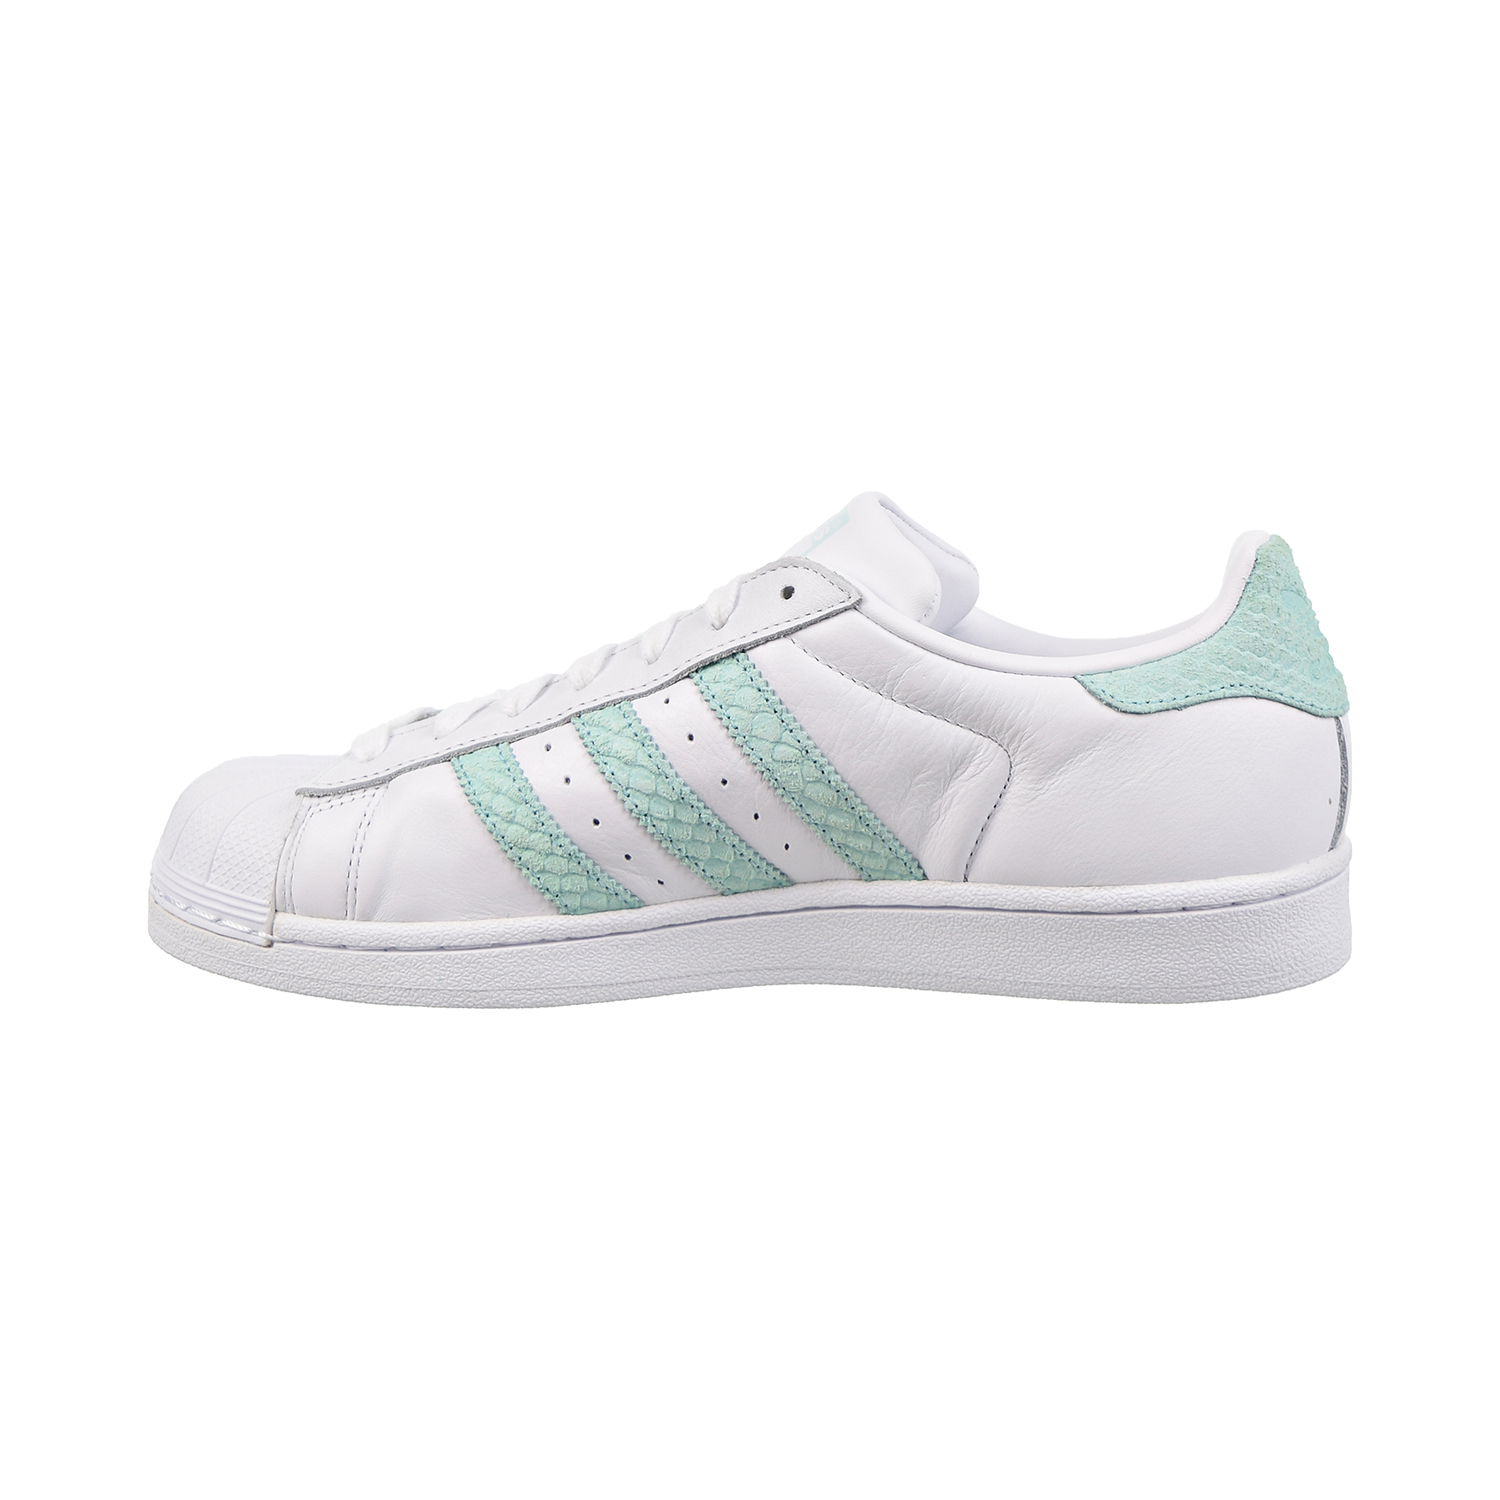 save off 12a3d 70f53 Adidas Superstar Women s Shoes White Supplier Color Off White cg5461